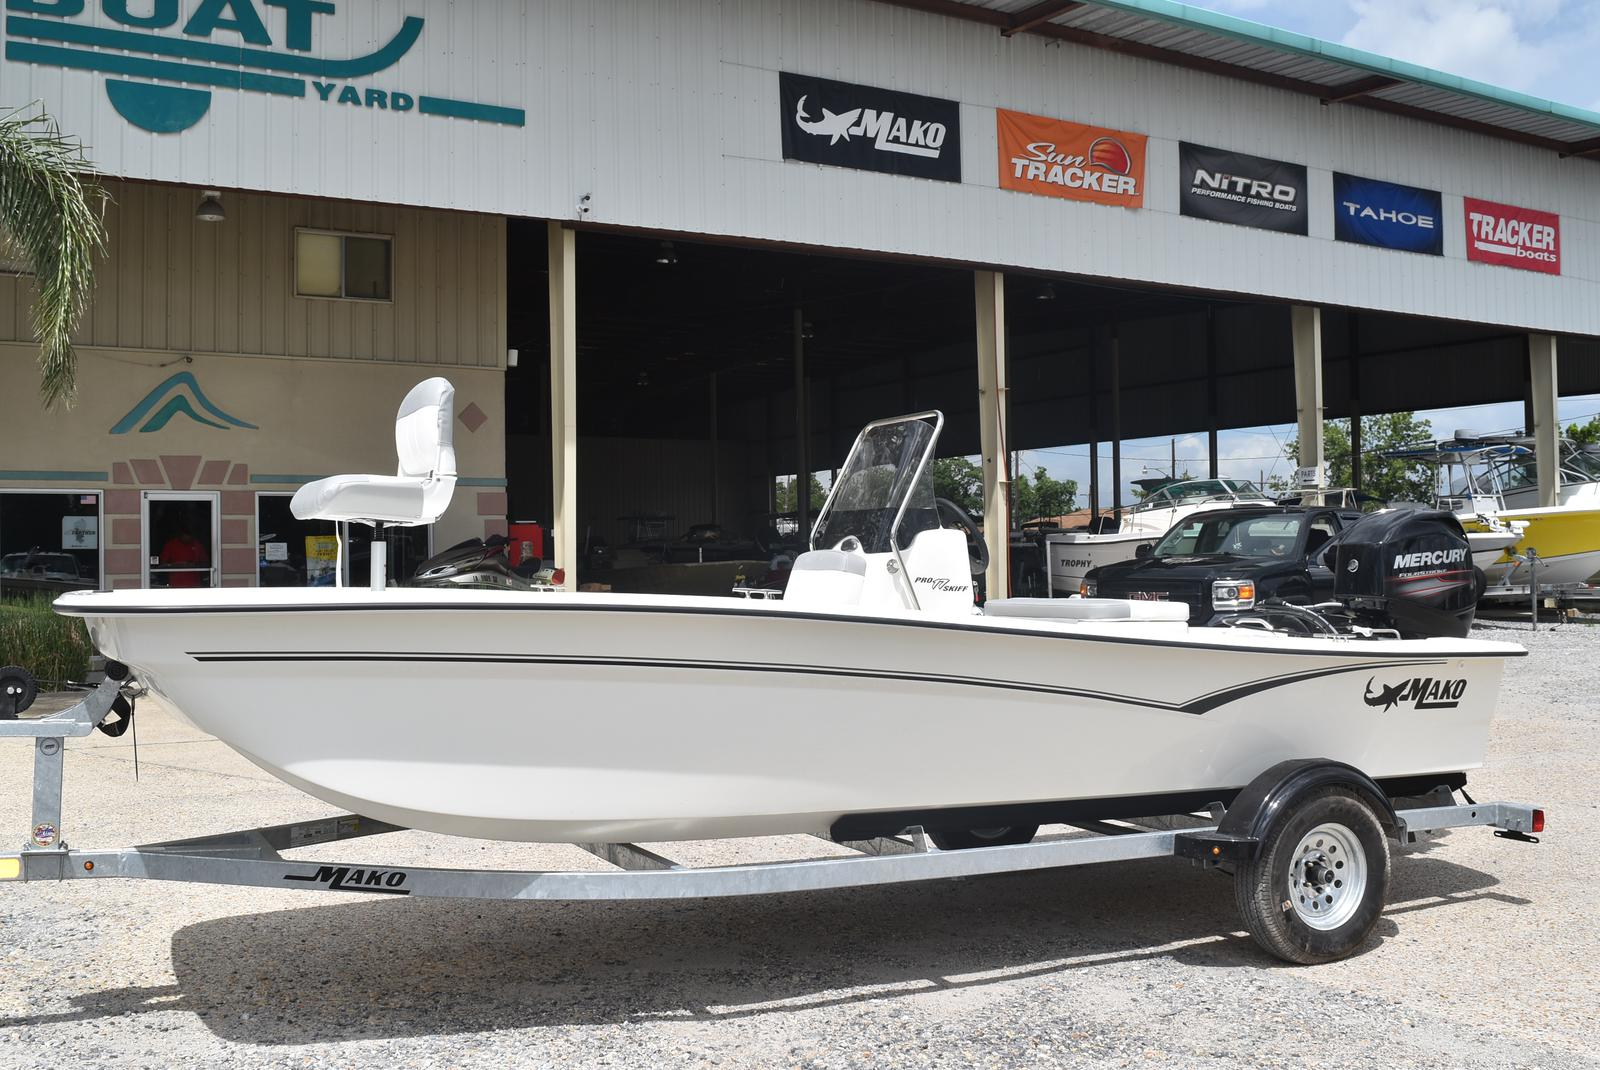 2020 Mako boat for sale, model of the boat is Pro Skiff 17, 75 ELPT & Image # 105 of 702